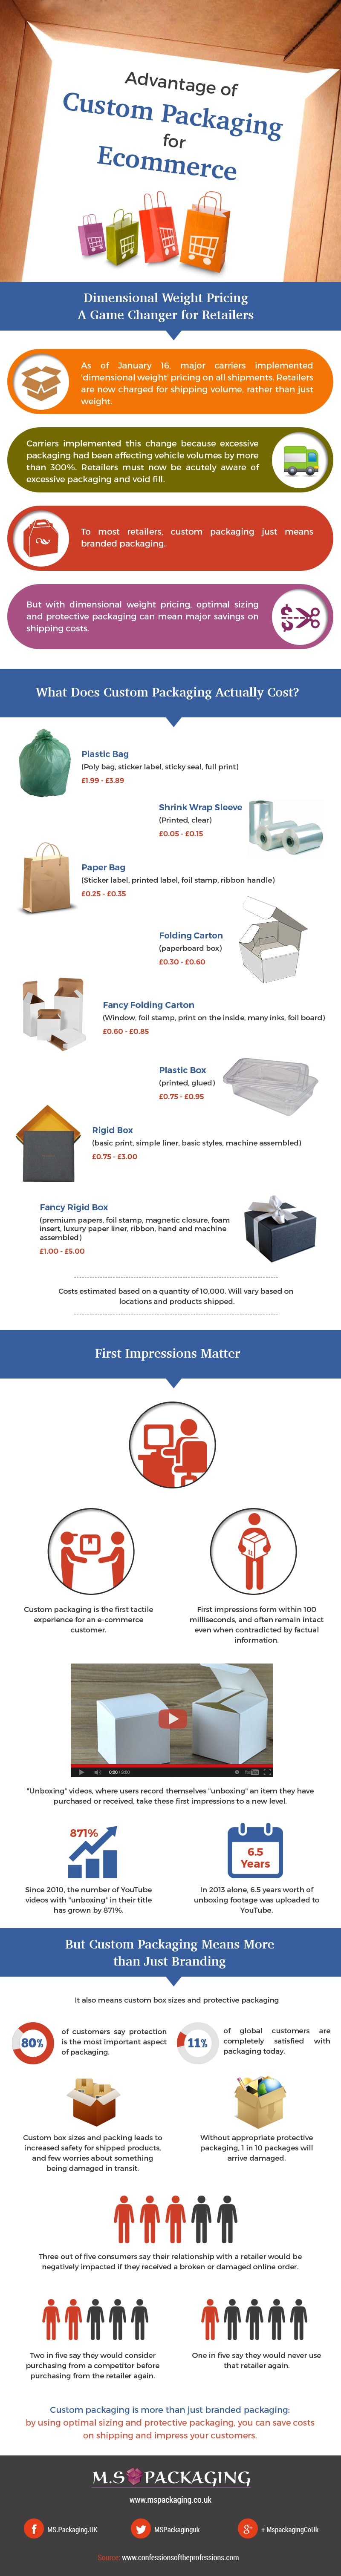 Advantage of Custom Packaging forE-Commerce [Infographic]